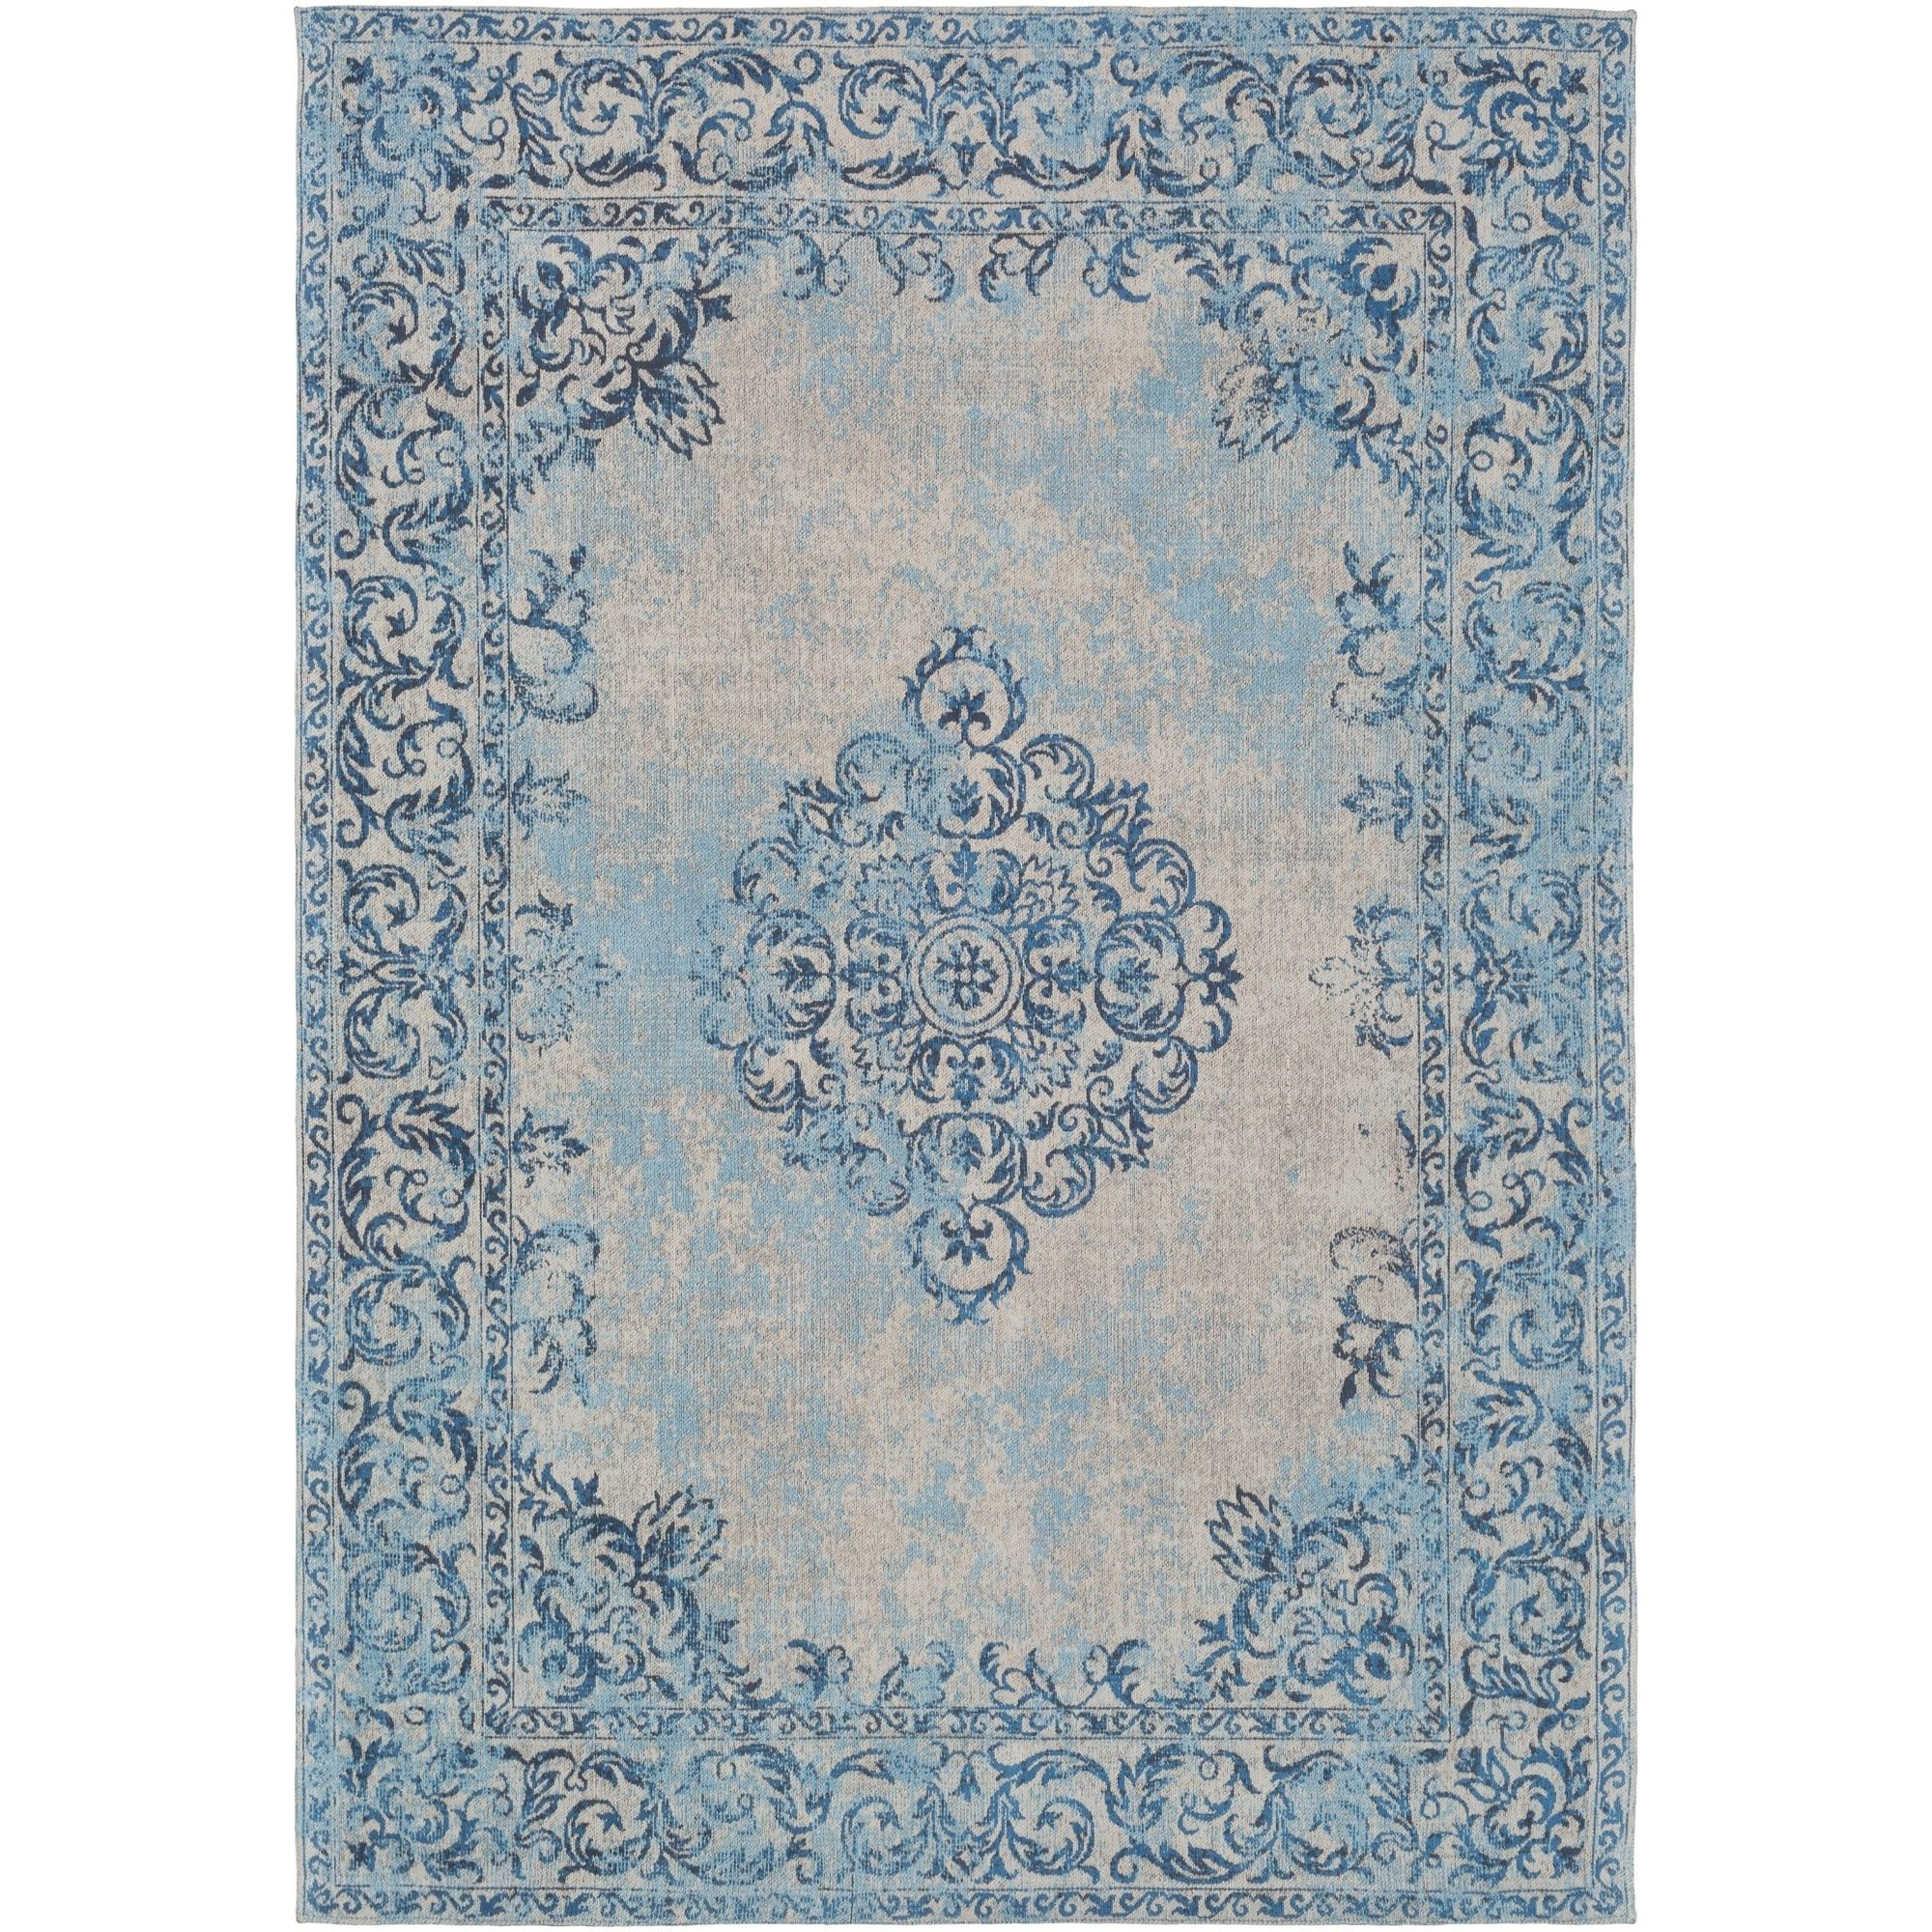 Online Shopping Bedding Furniture Electronics Jewelry Clothing More Area Rugs Beige Area Rugs Traditional Area Rugs